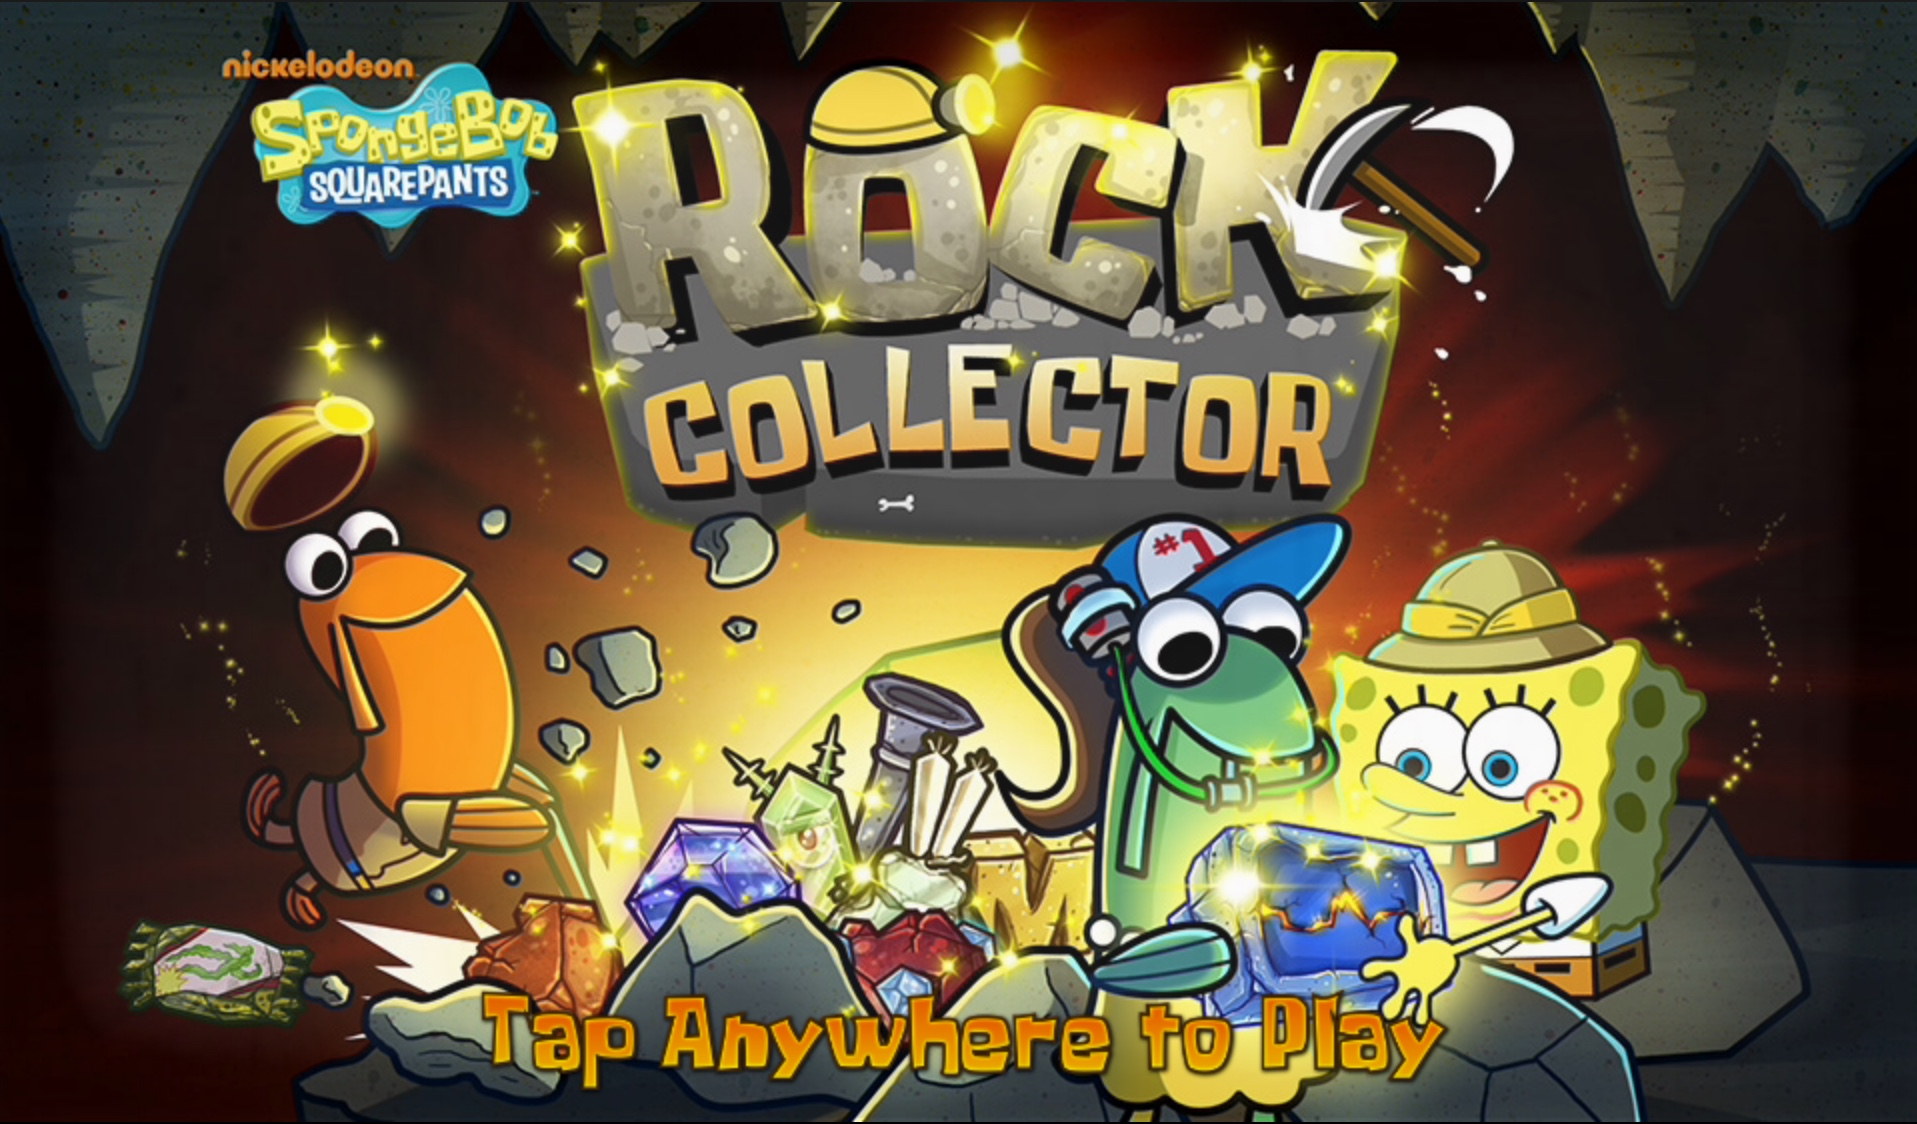 Play Spongebob Squarepants: Rock Collector